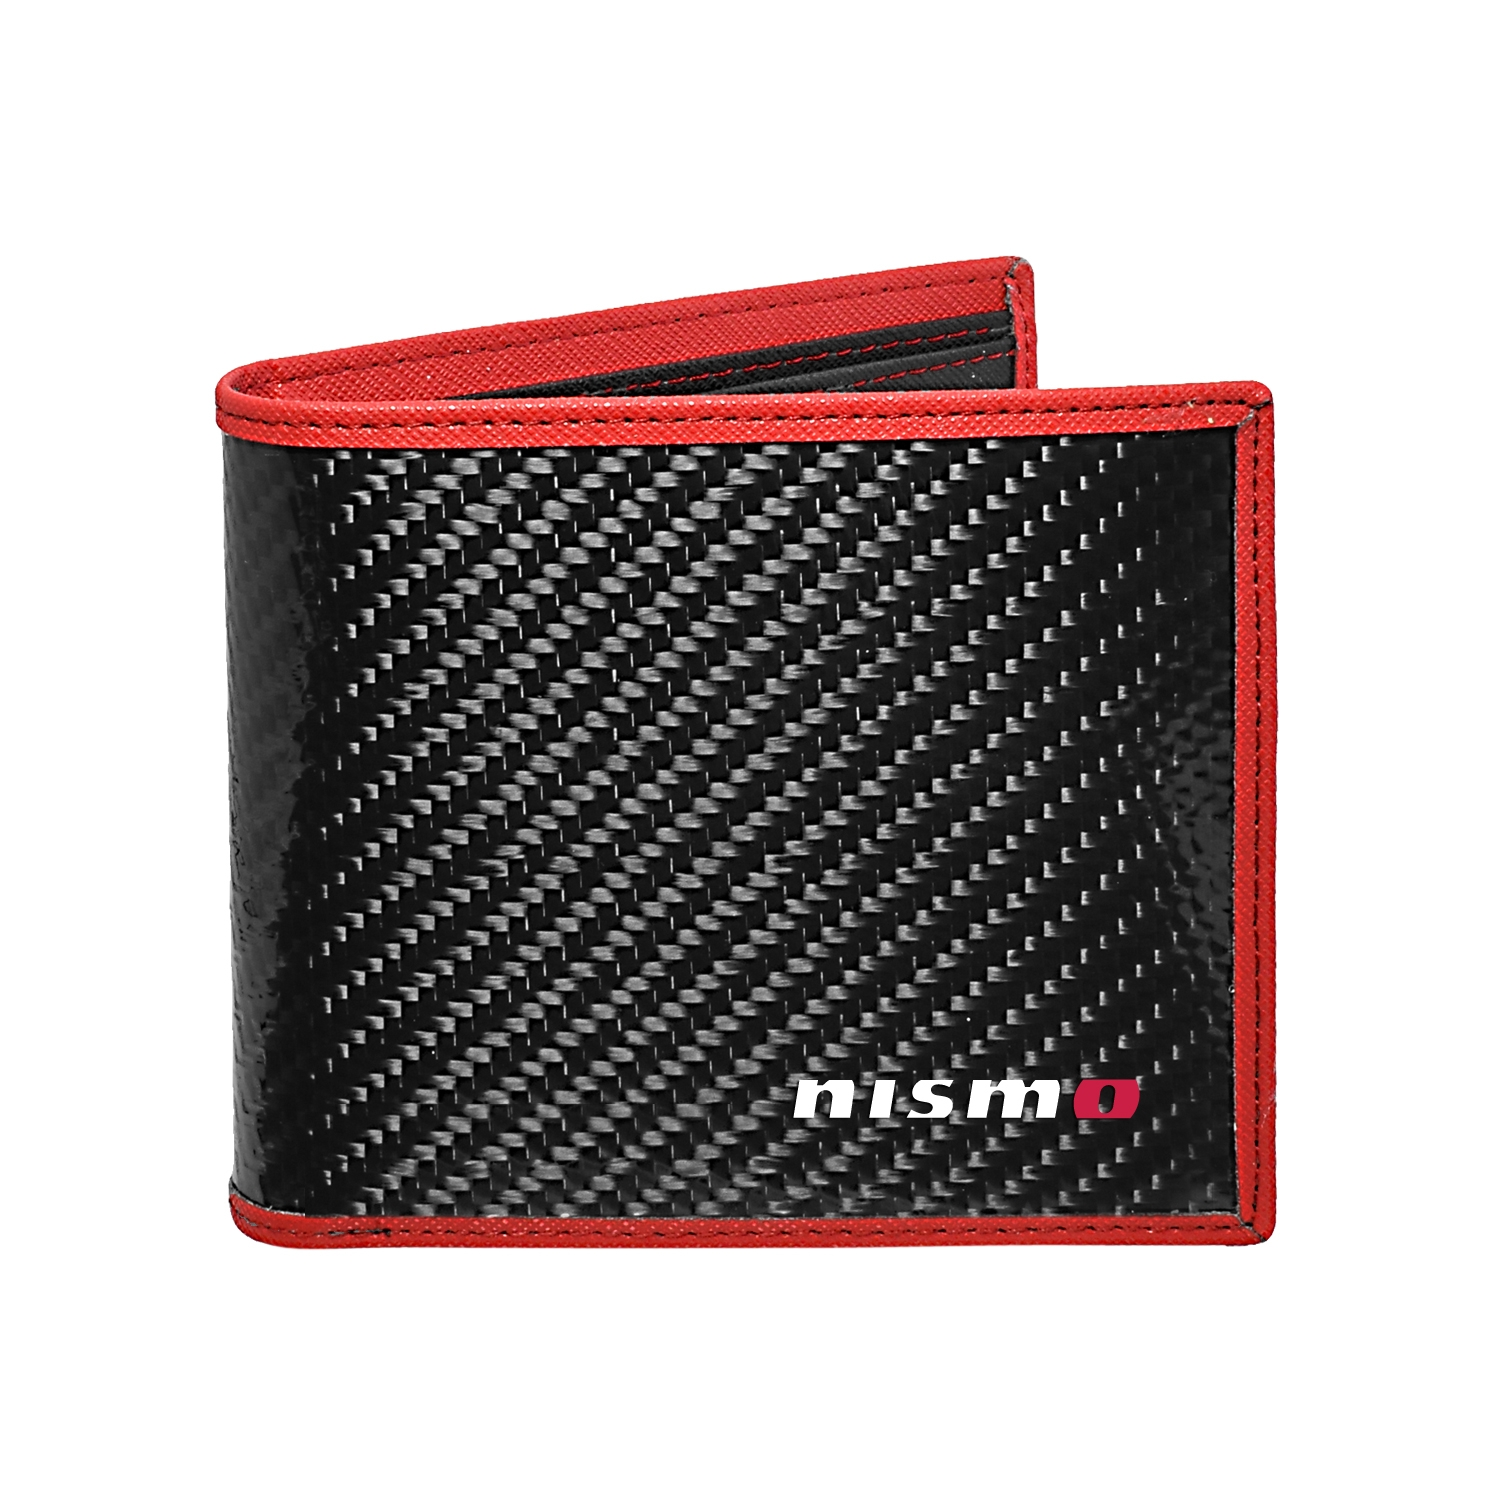 Nissan NISMO Real Premium Black Carbon Fiber Wallet with Red Stitched Edge